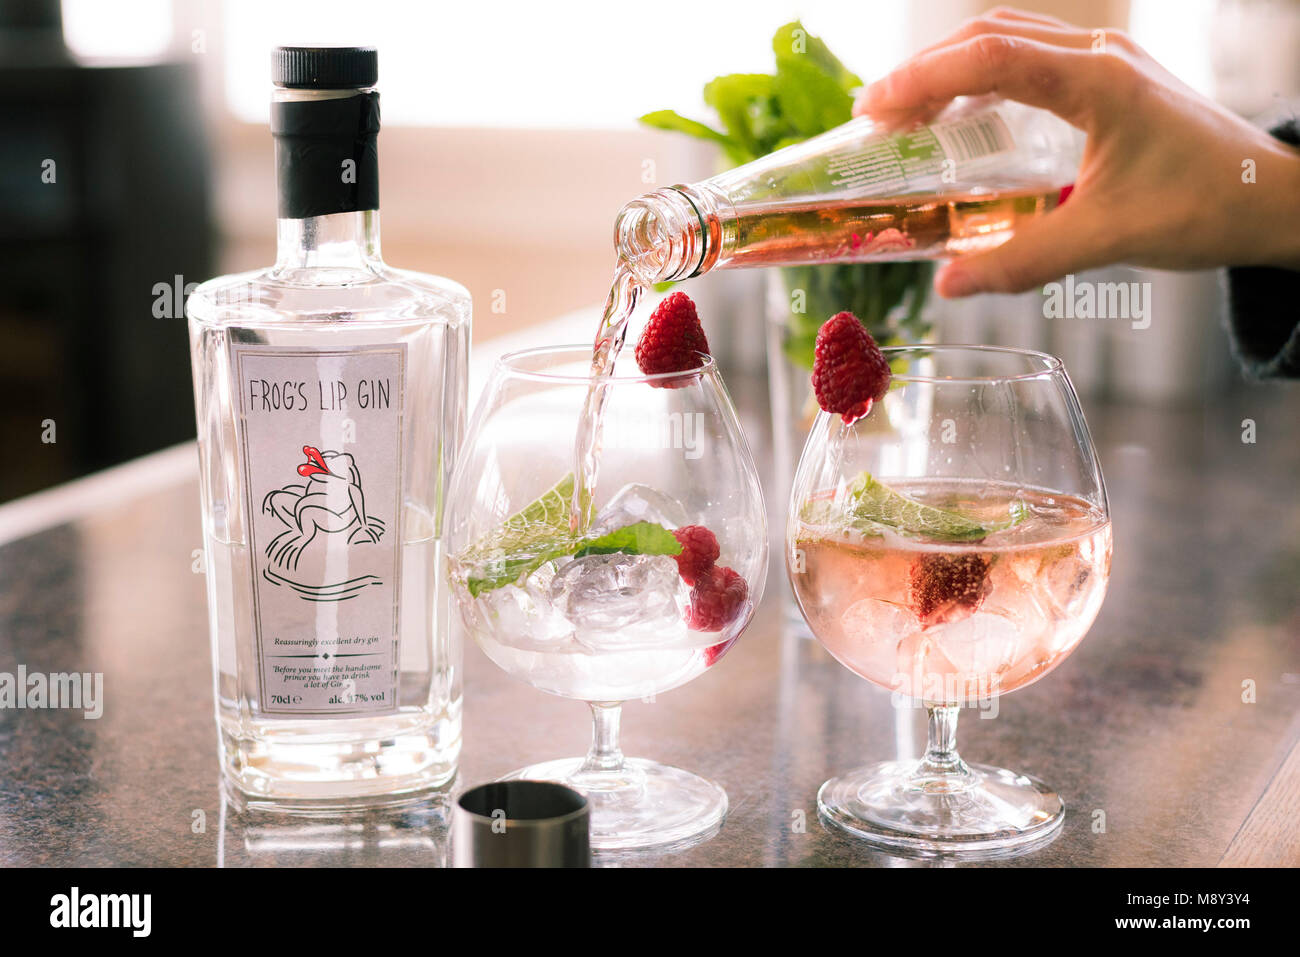 Gin Tonic bevande preparate. Immagini Stock